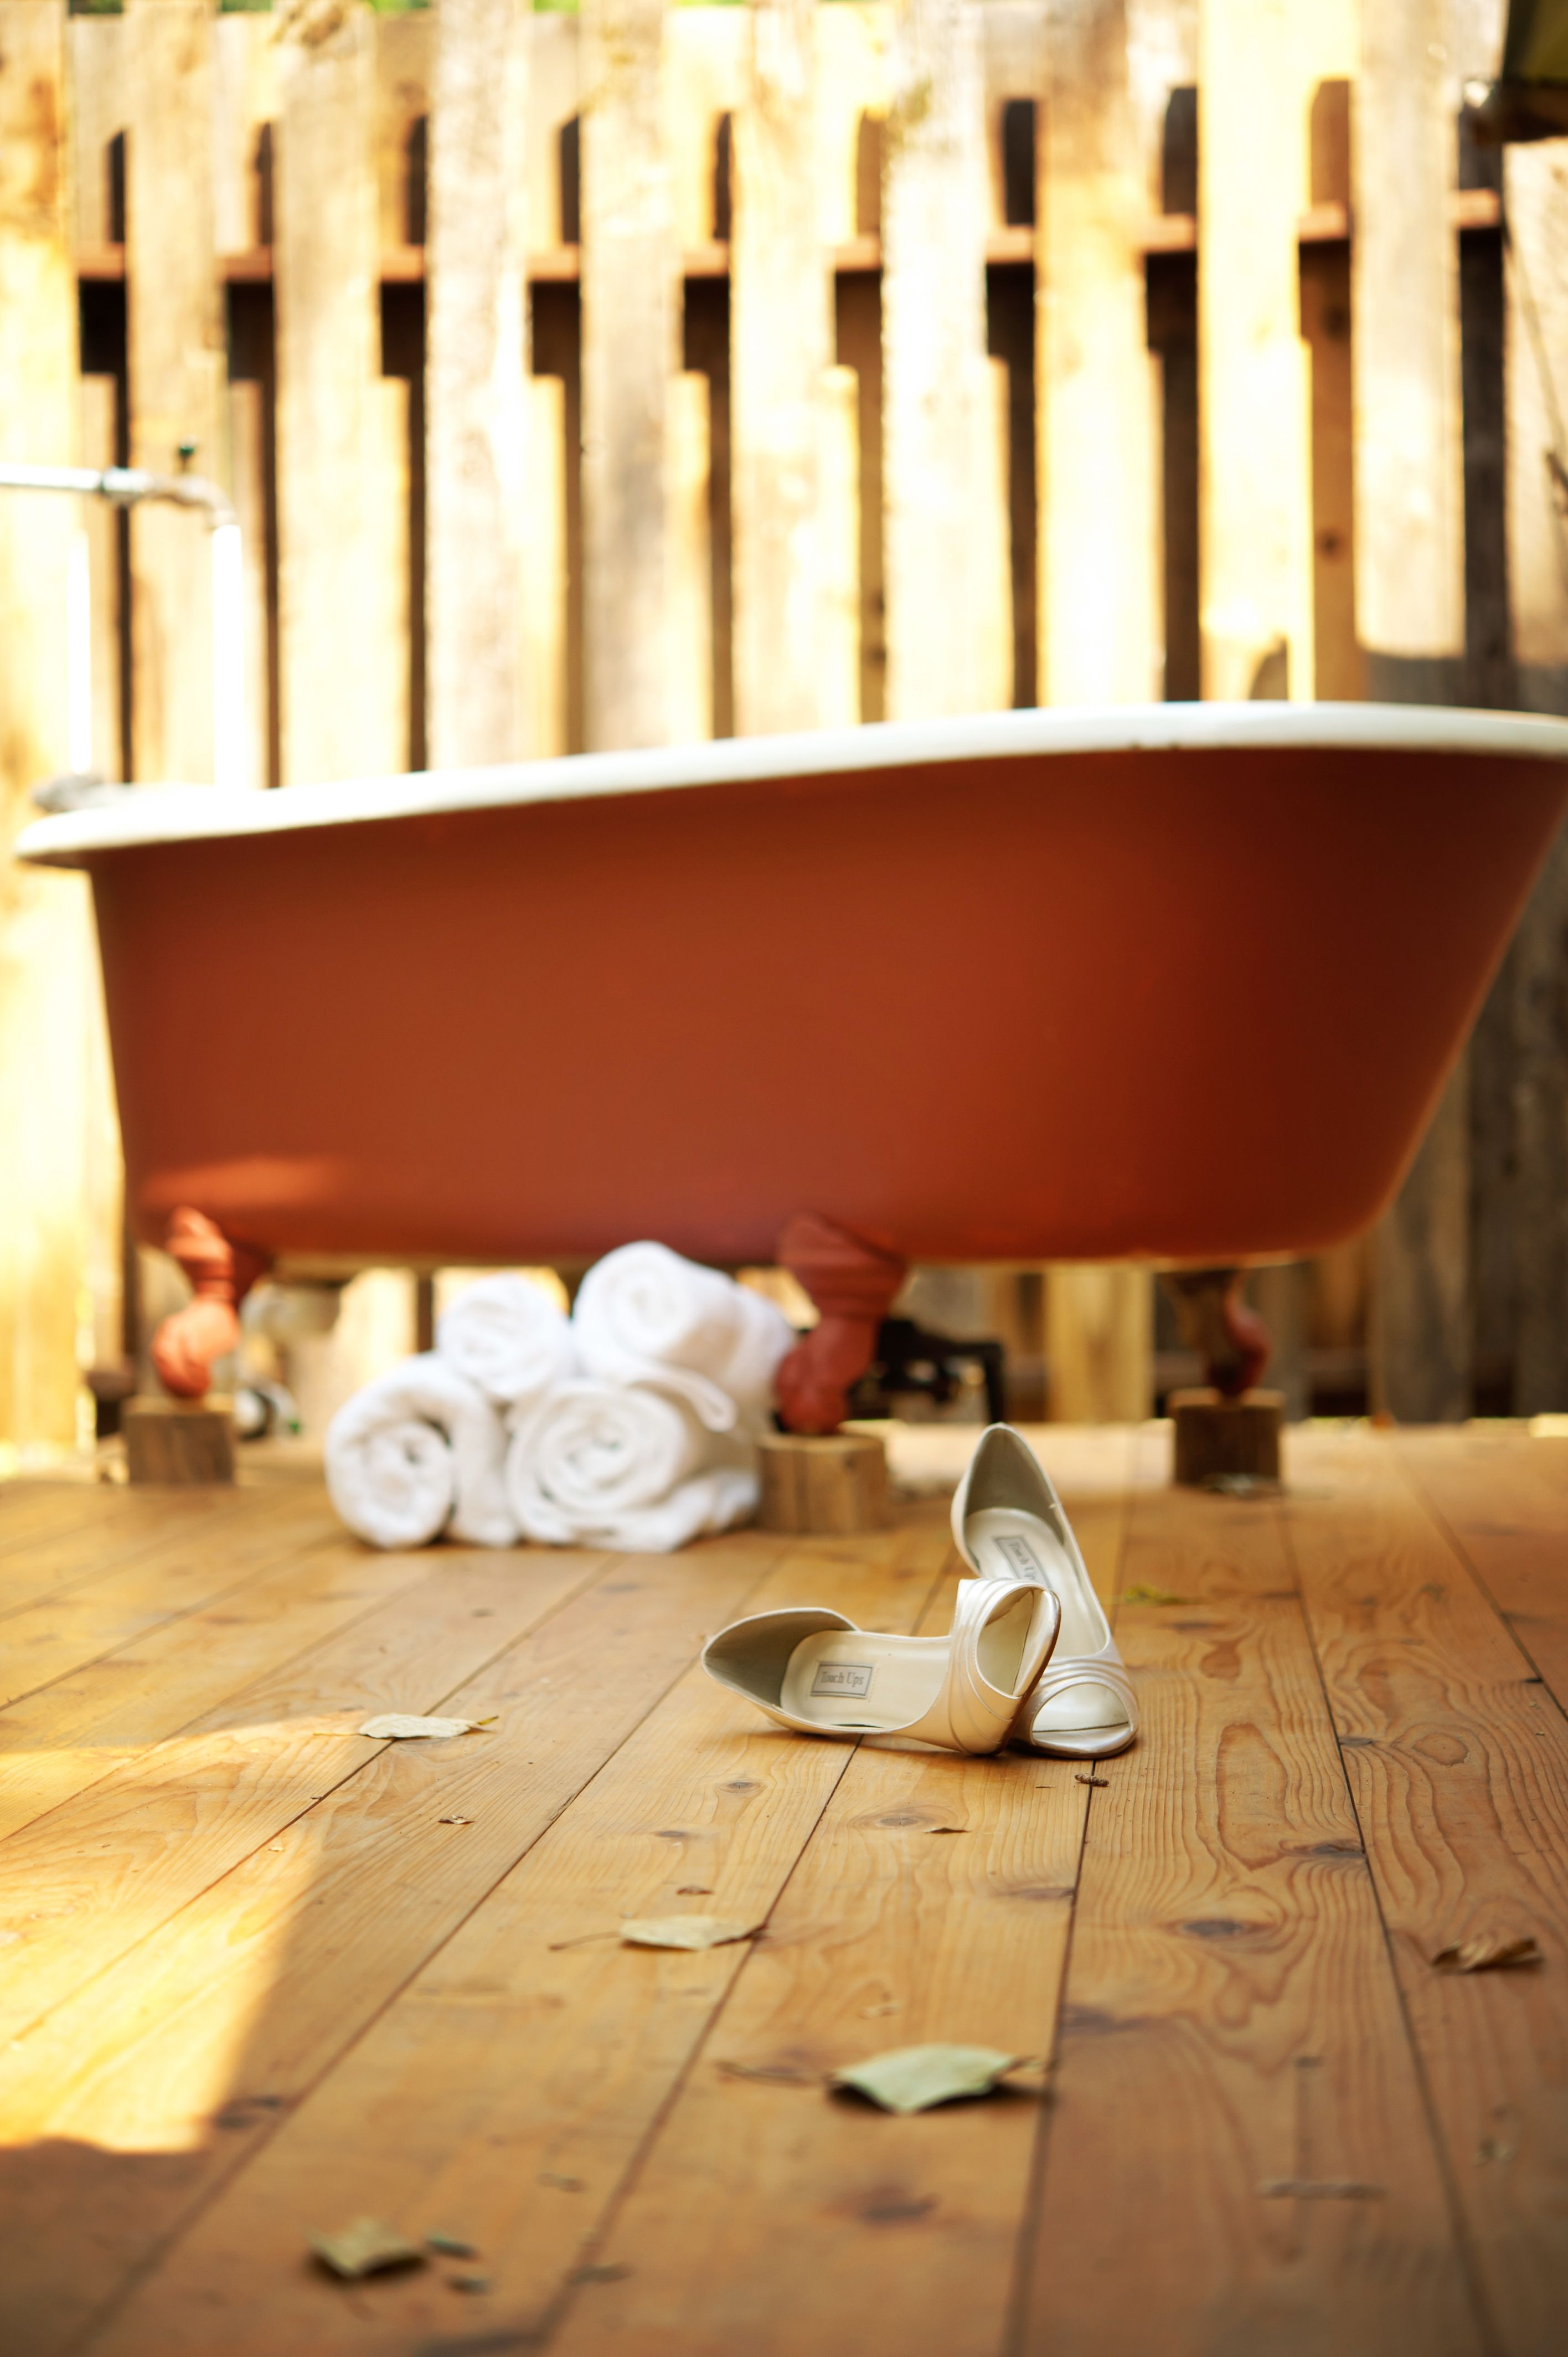 Wedding decor images  wedding decor outdoorwedding glamping bathtub idaho